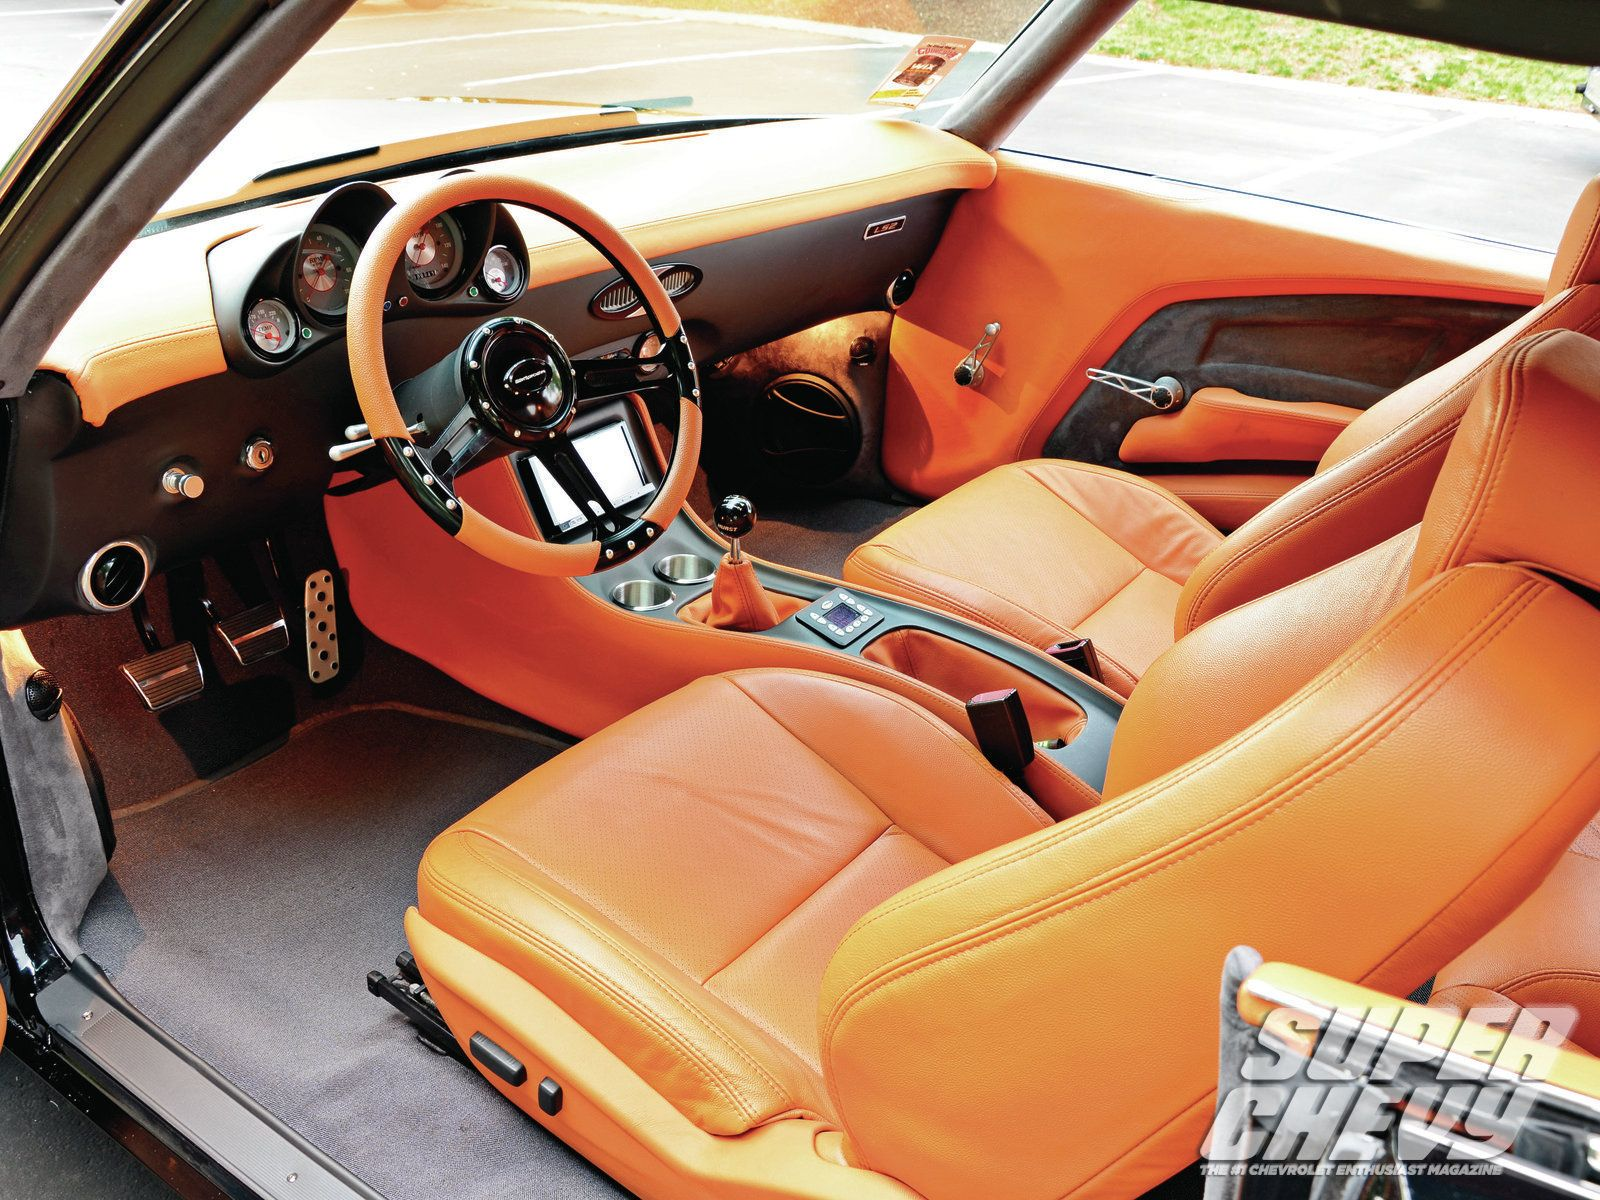 1970 Chevrolet Chevelle Ss Interior Photo 6 Custom Dash And Console Door Panels Brown Orange